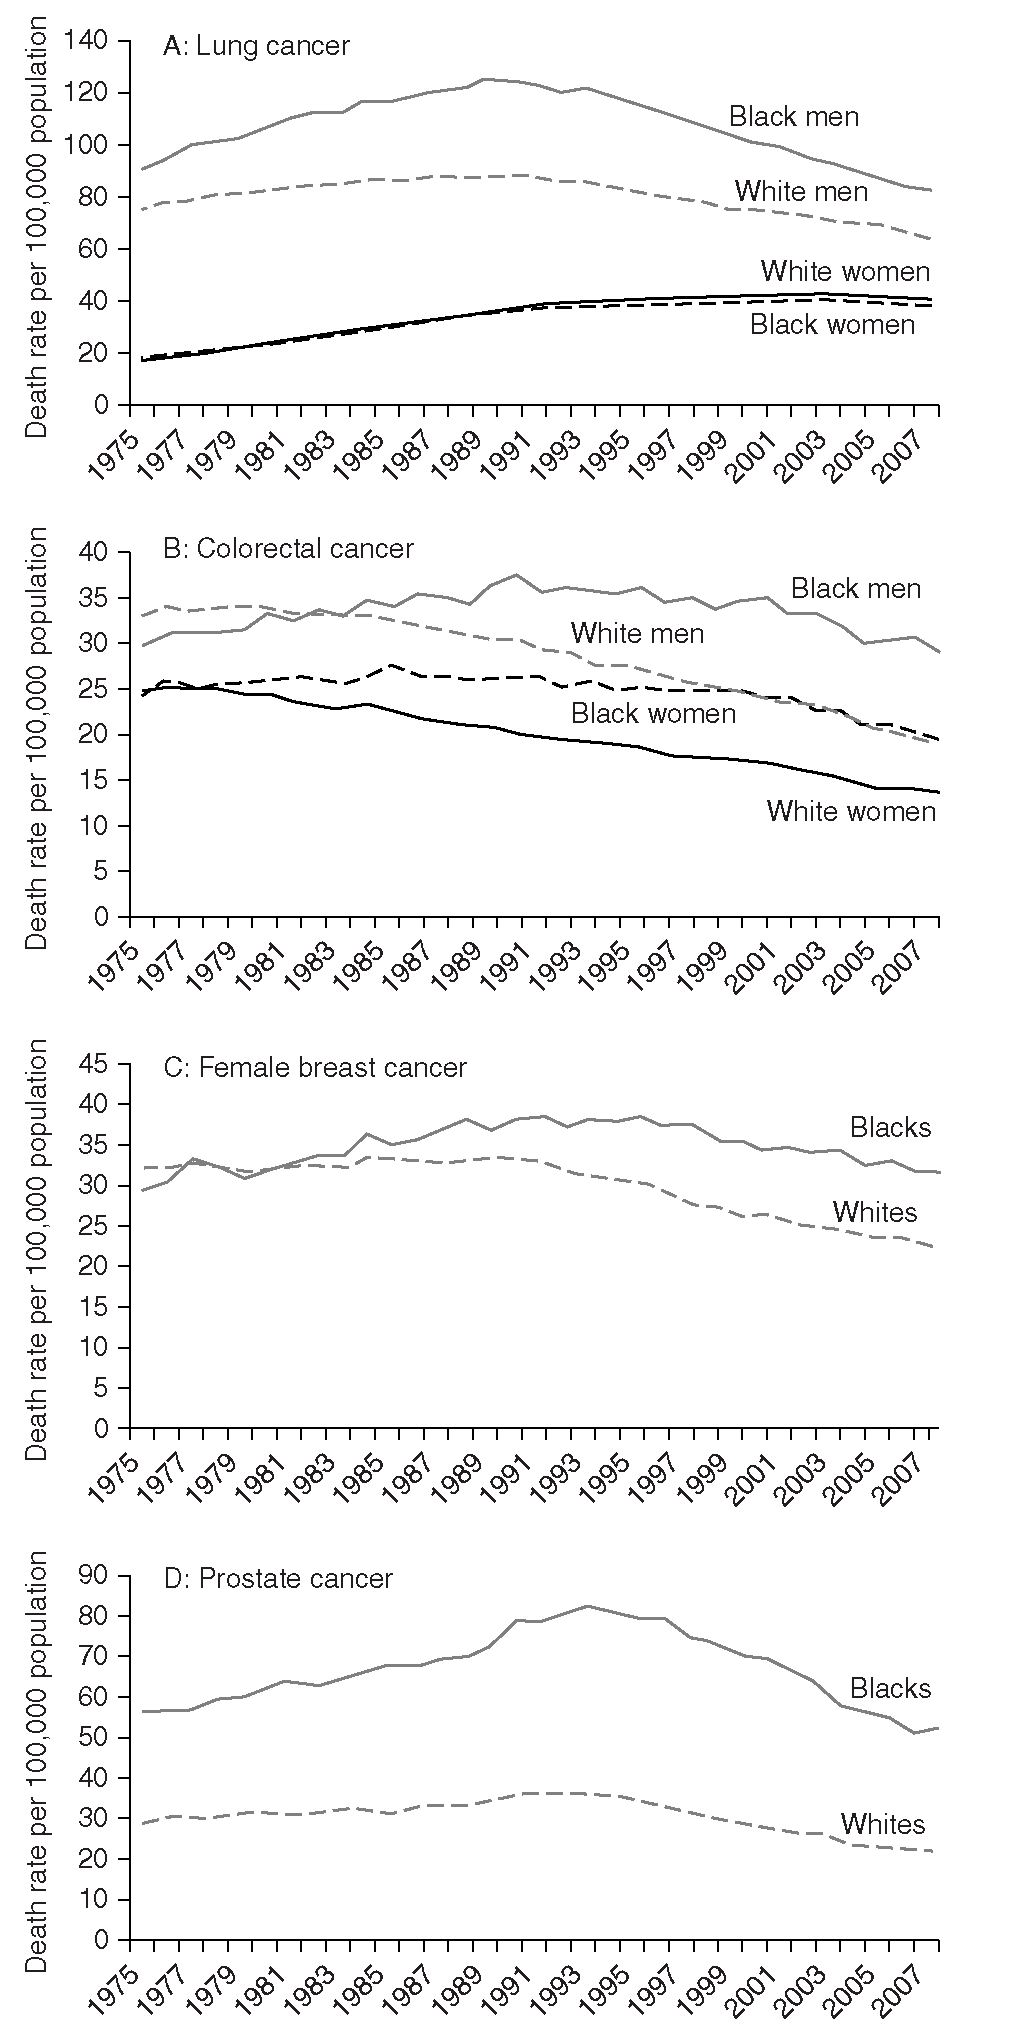 Cancer Mortality Rates for African American and Whites for Lung, Colorectal, Female Breast, and Prostate Cancers in the United States, 1975-2007